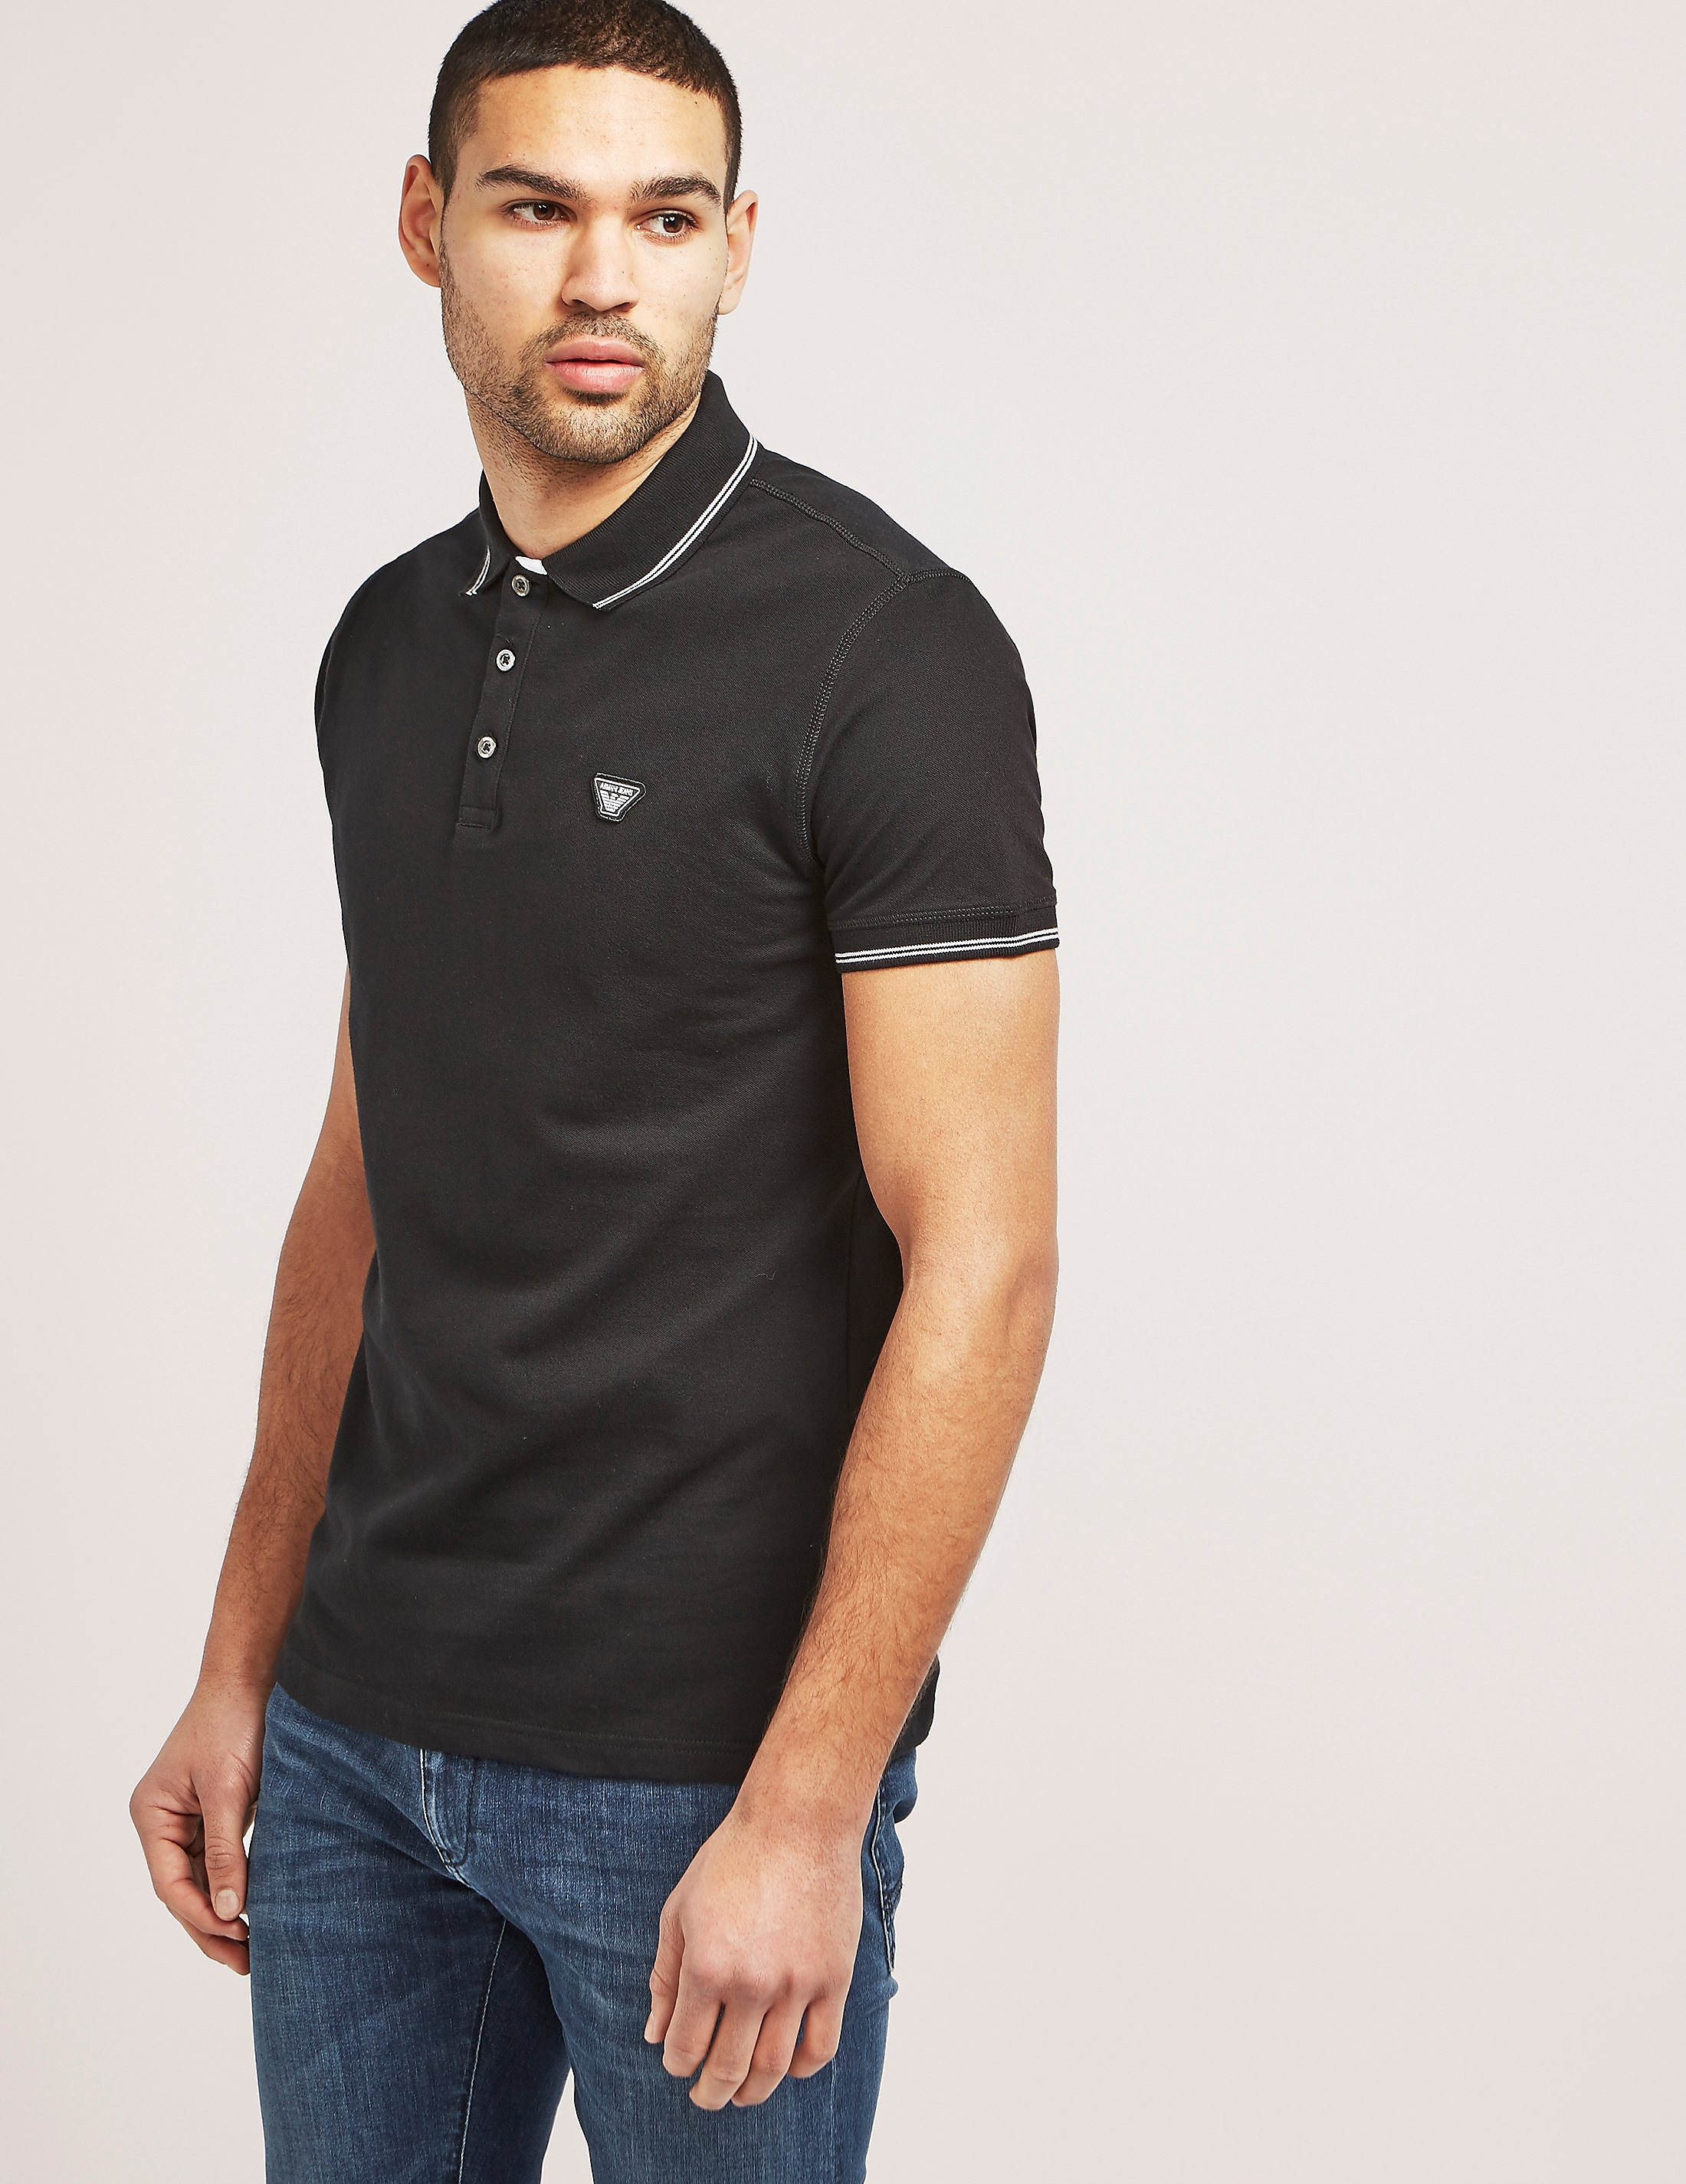 Armani Jeans Tipped Short Sleeve Polo Shirt